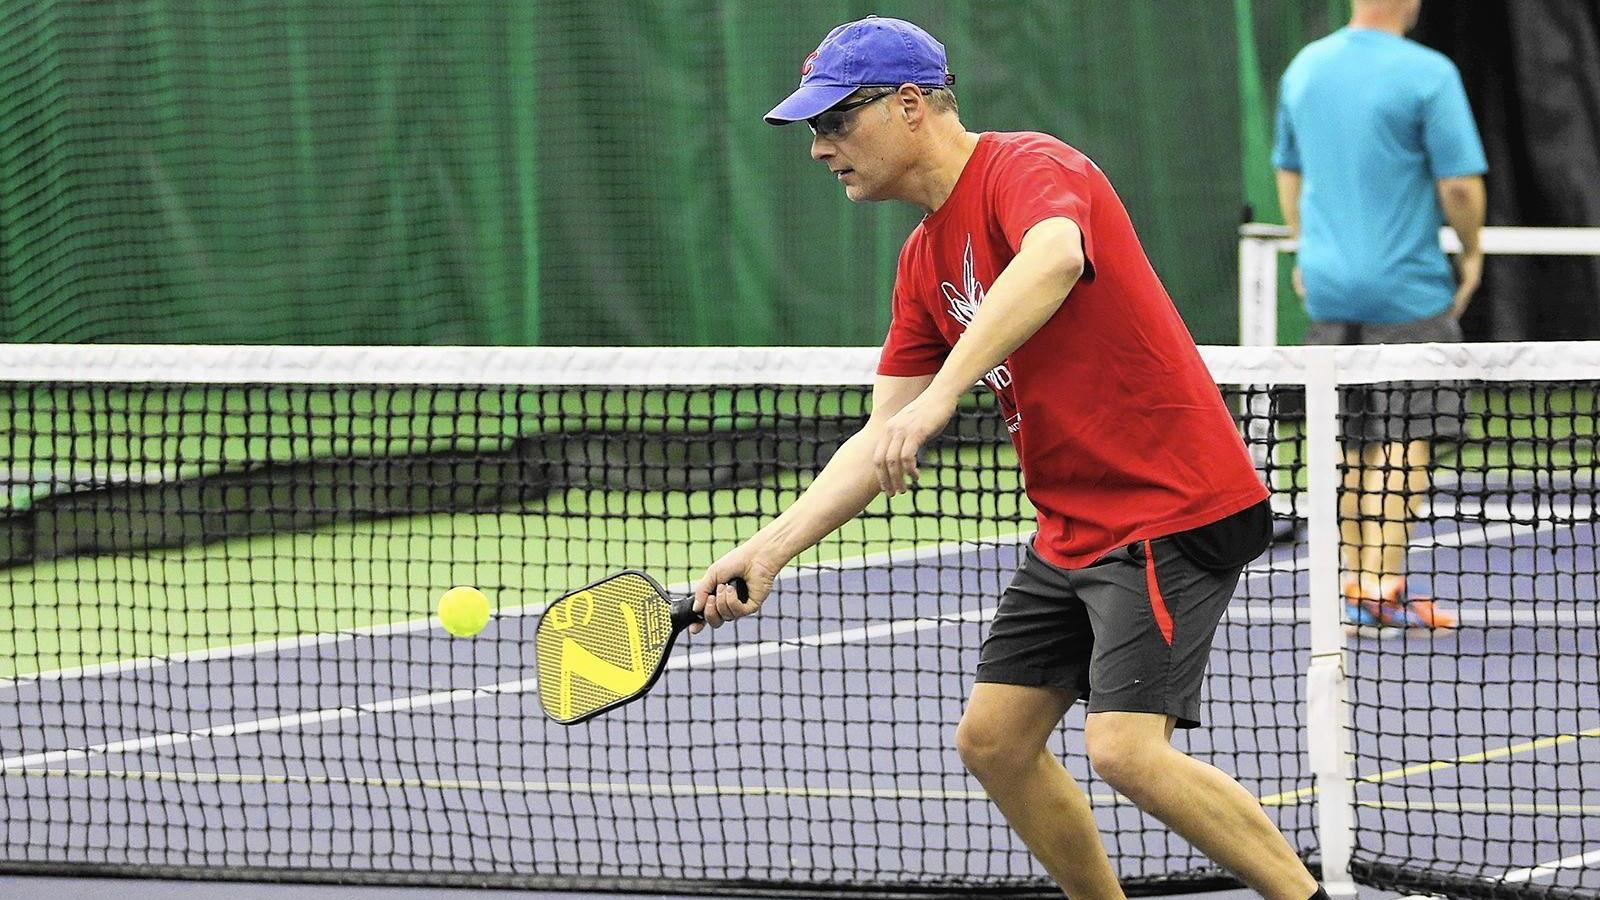 http://www.chicagotribune.com/suburbs/fitness/ct-0325-rec-south-pickleball-20180324-story,amp.html